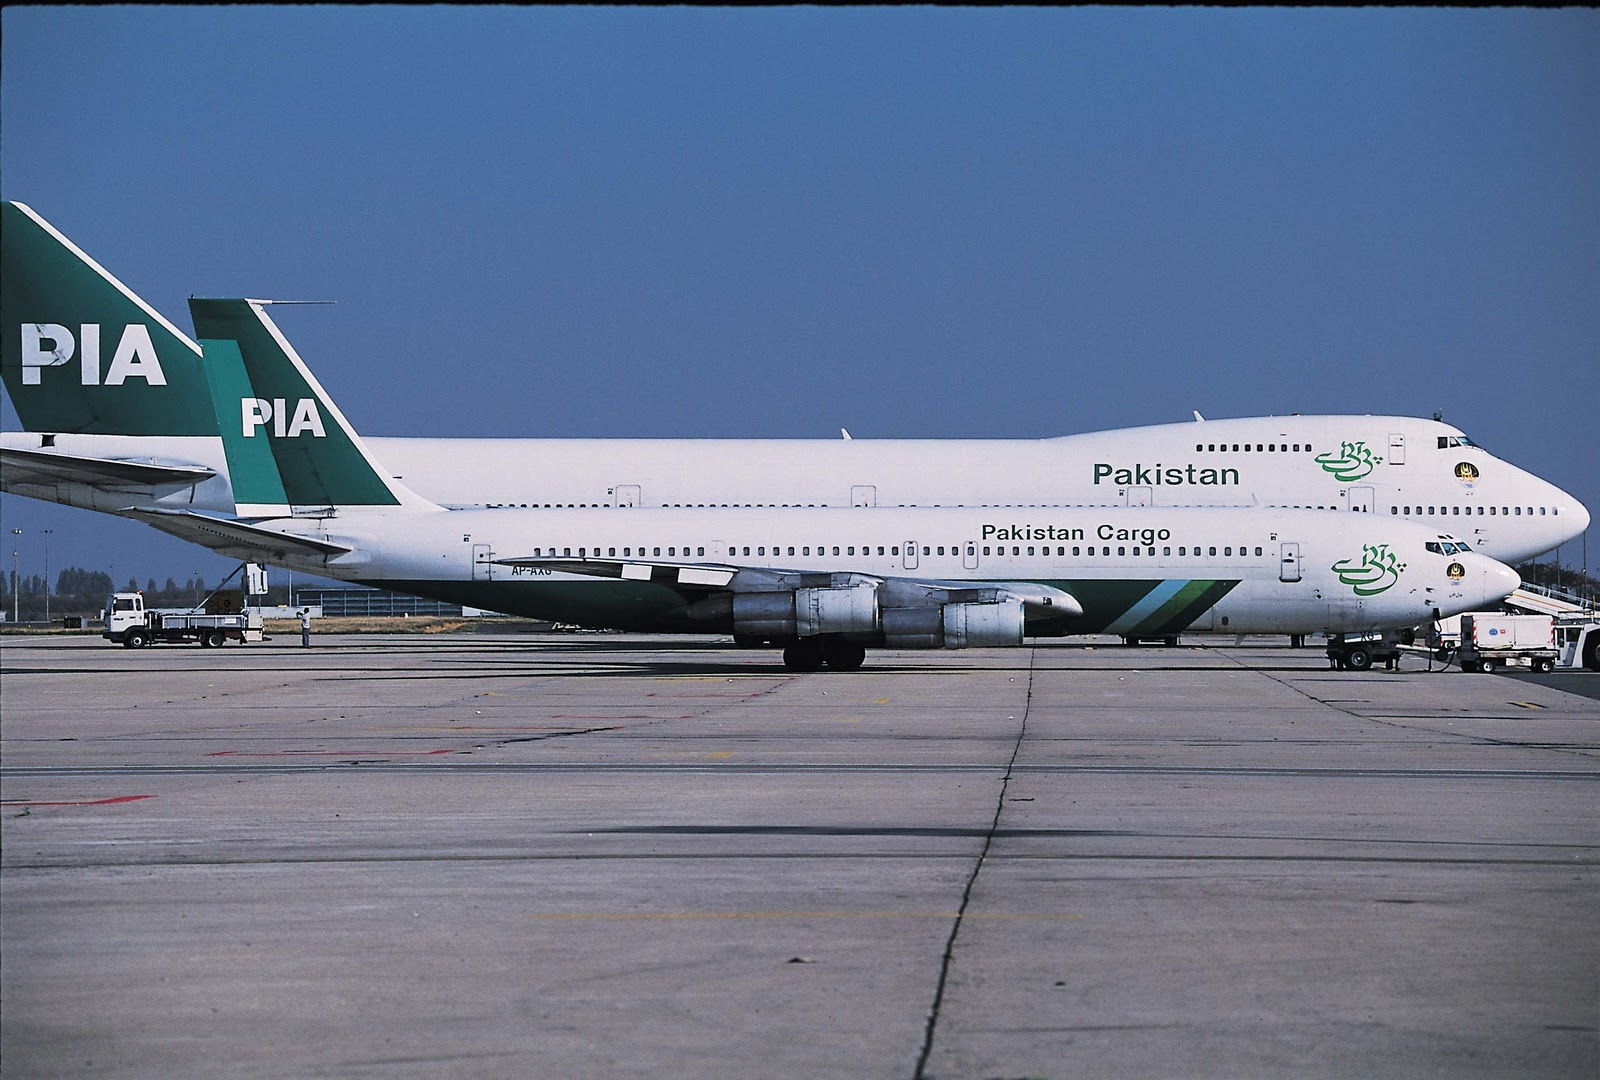 pia airlines website - HD1600×1080